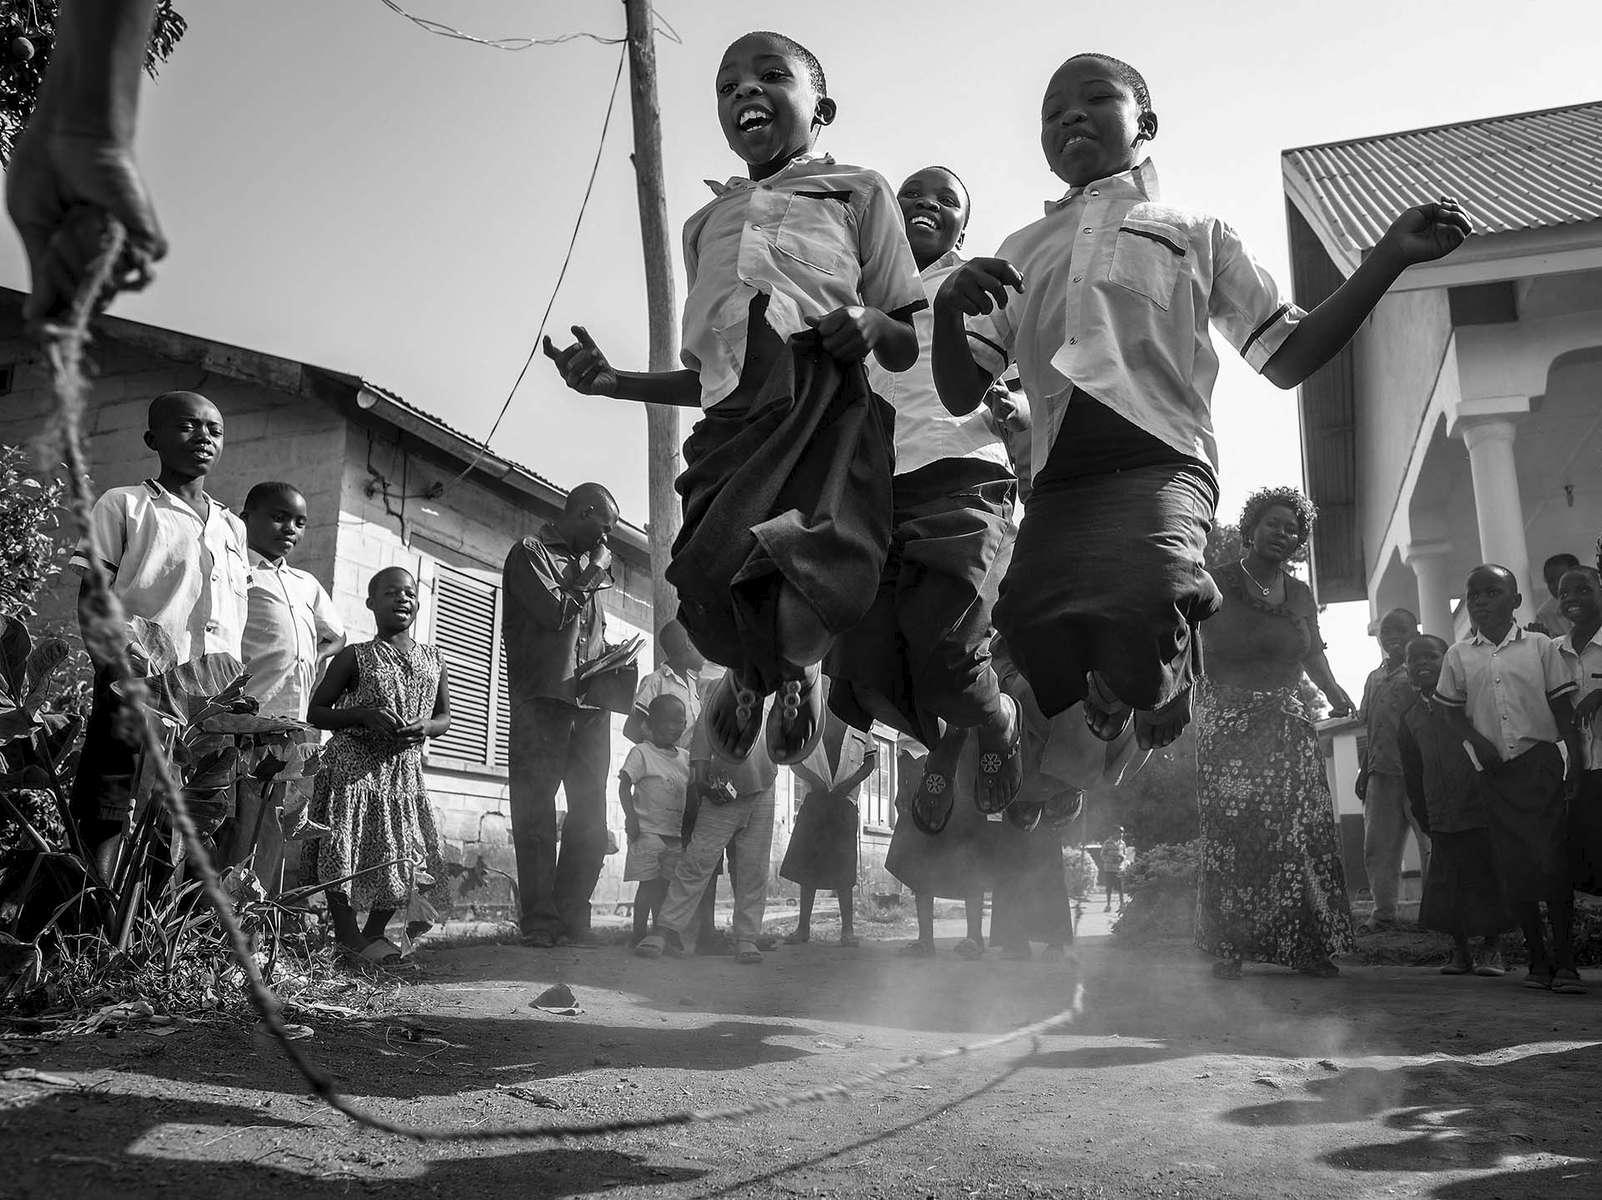 Children jump in unisom at St. Kizito Orphanage in Bunia, DR Congo, December 2016.